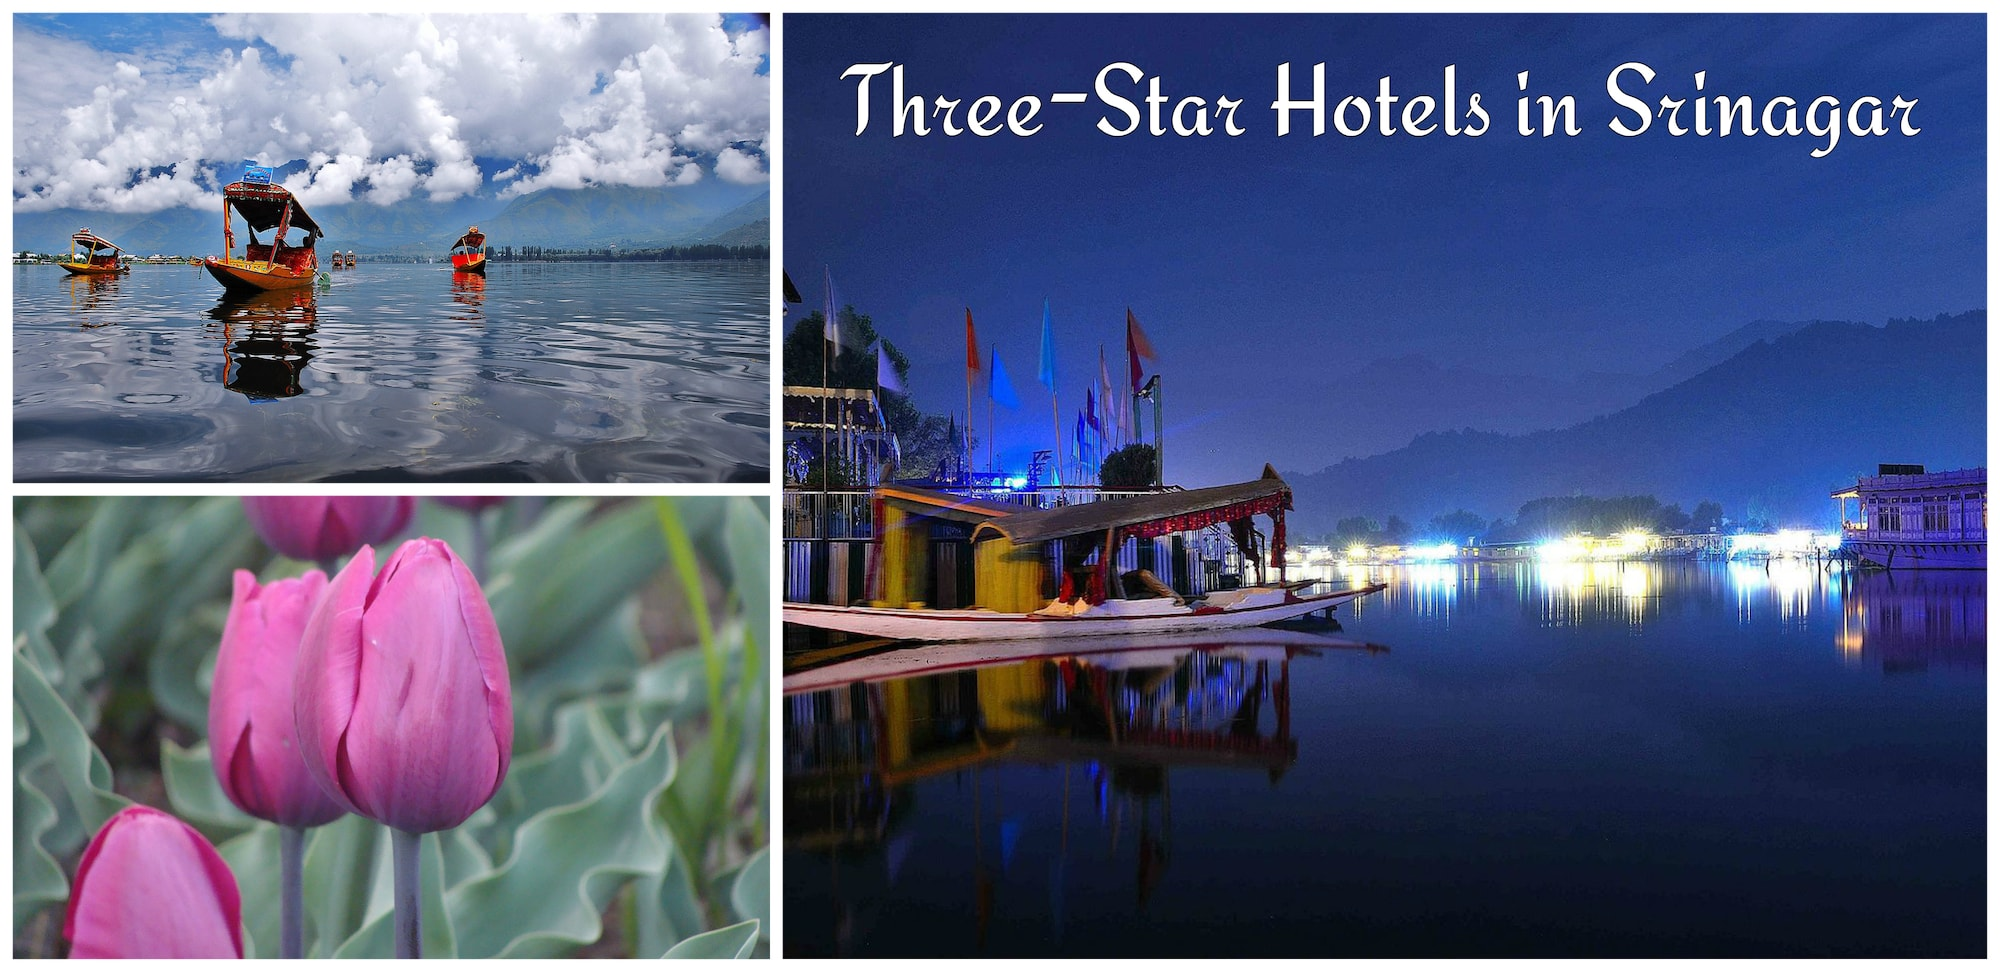 Three-Star-Hotels-Srinagar.jpg